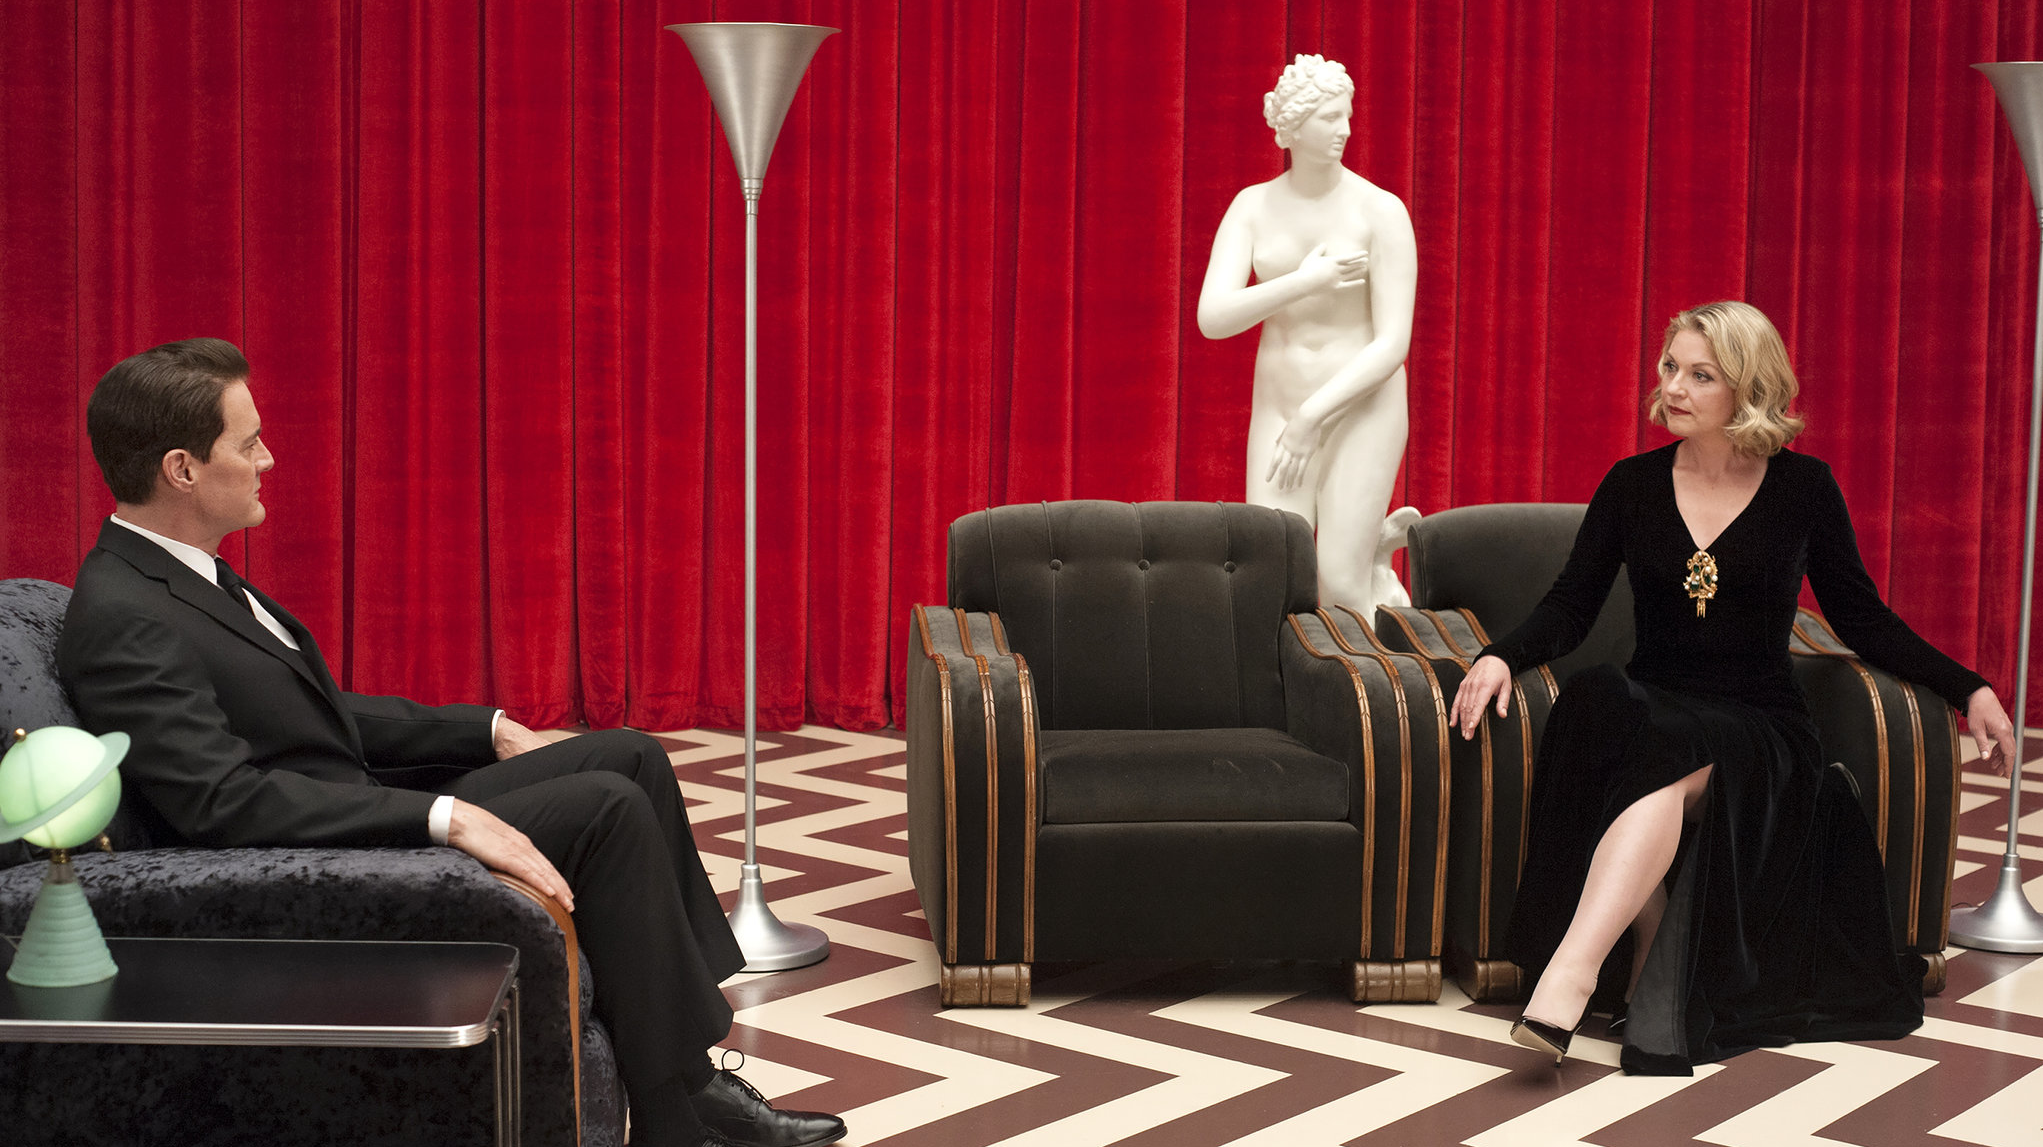 This Video Series Is The Best Possible Introduction To Understanding Twin Peaks